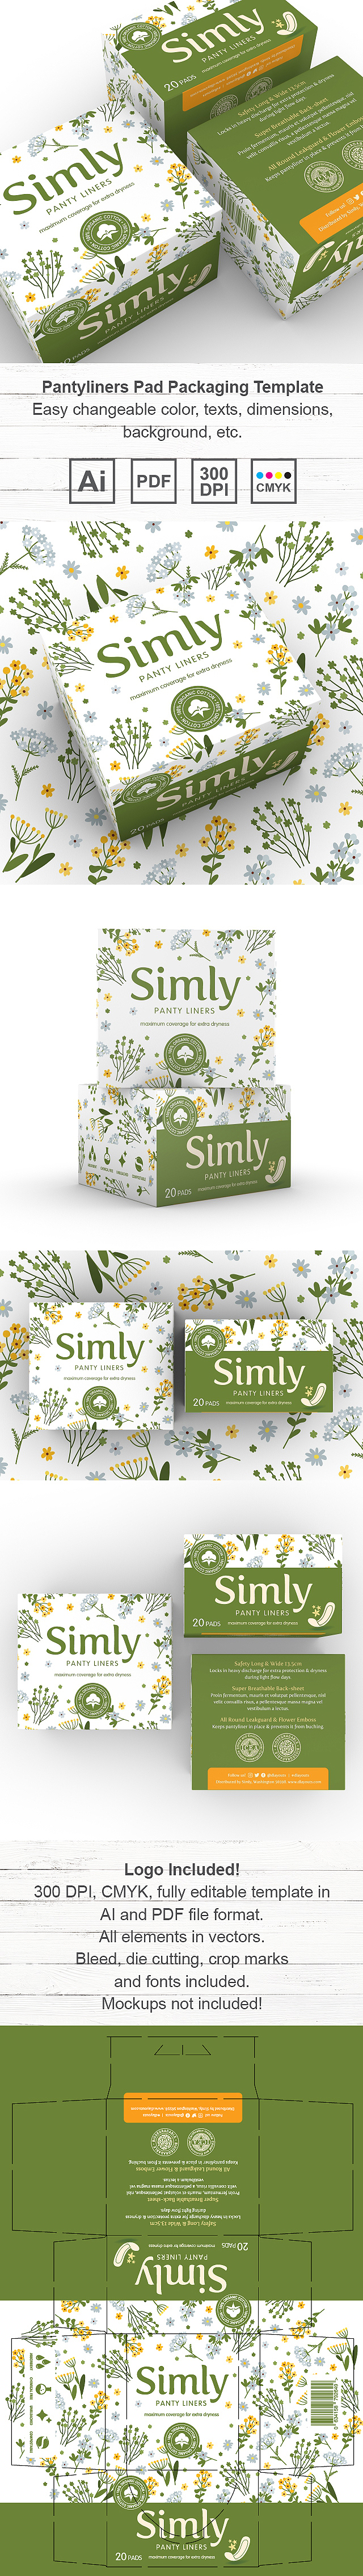 Pantyliners Pad Packaging Template